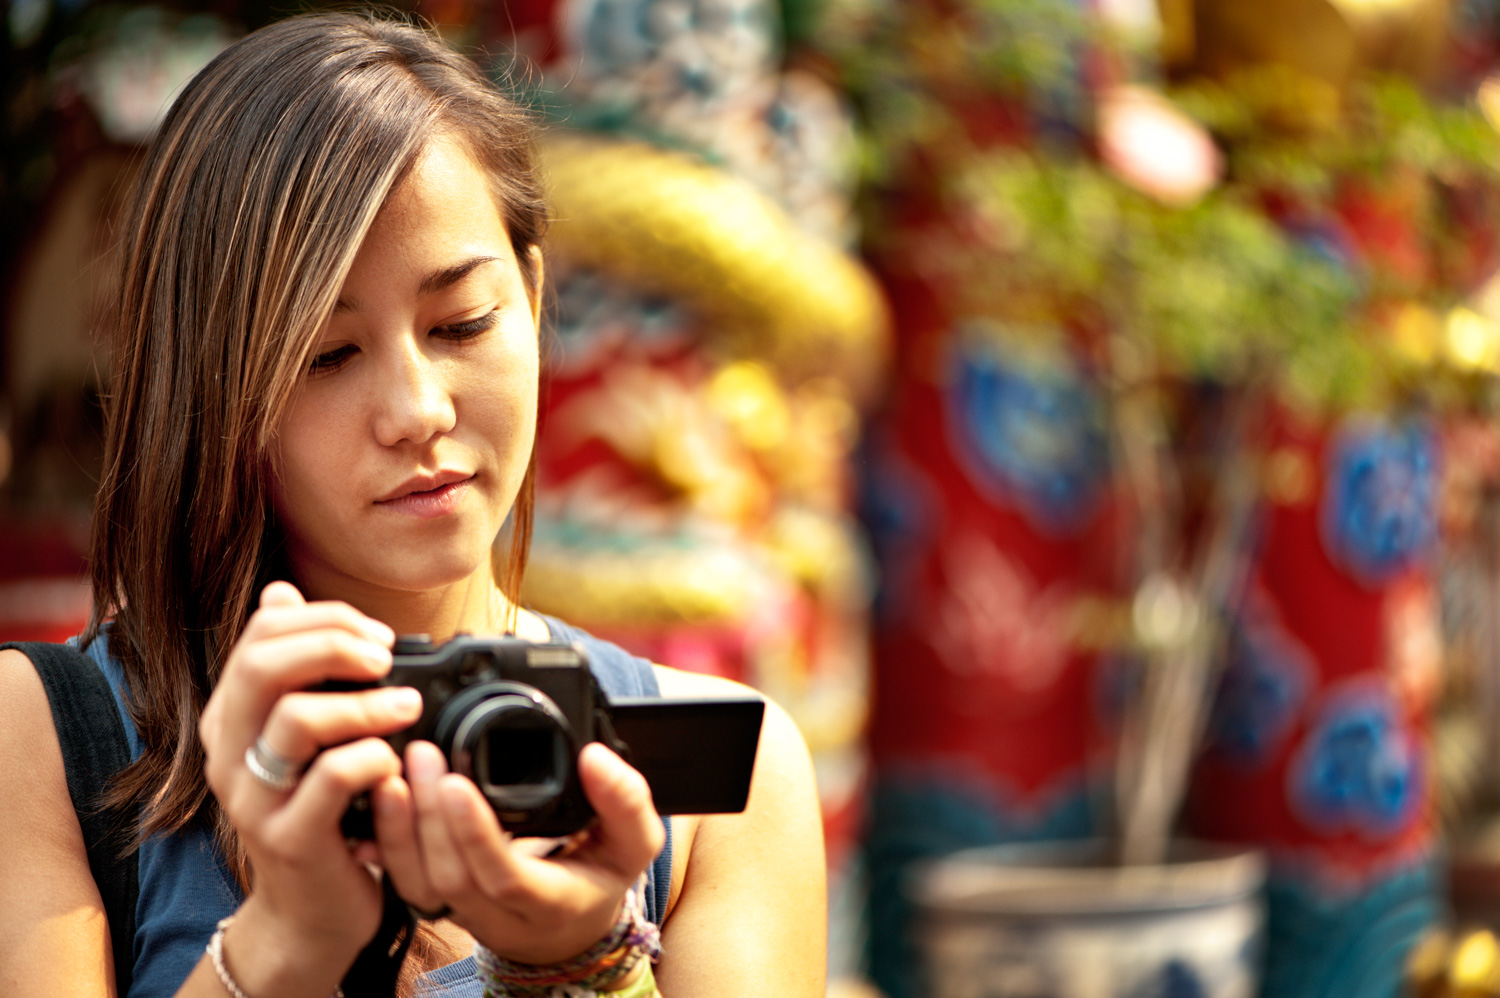 Focusing Tips for Beginners Asian photogrpaher and her camera